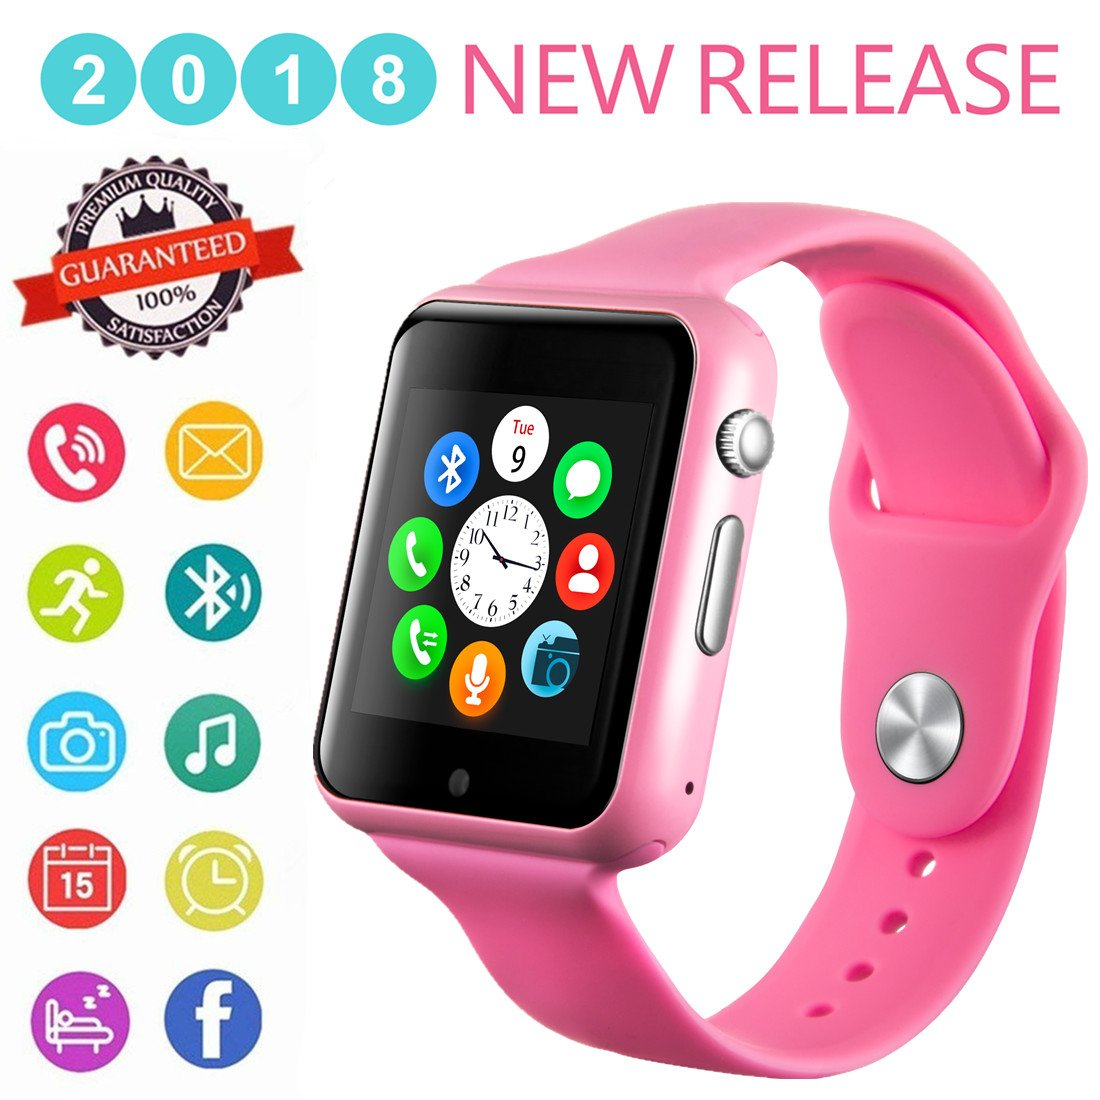 Smartwatch, Bluetooth Smart Watch Phone Wristwatch with Pedometer Camera SMS SNS Sync Music Player SIM Card Slot for Android iPhone (Partial Functions) Women Girls (Pink)